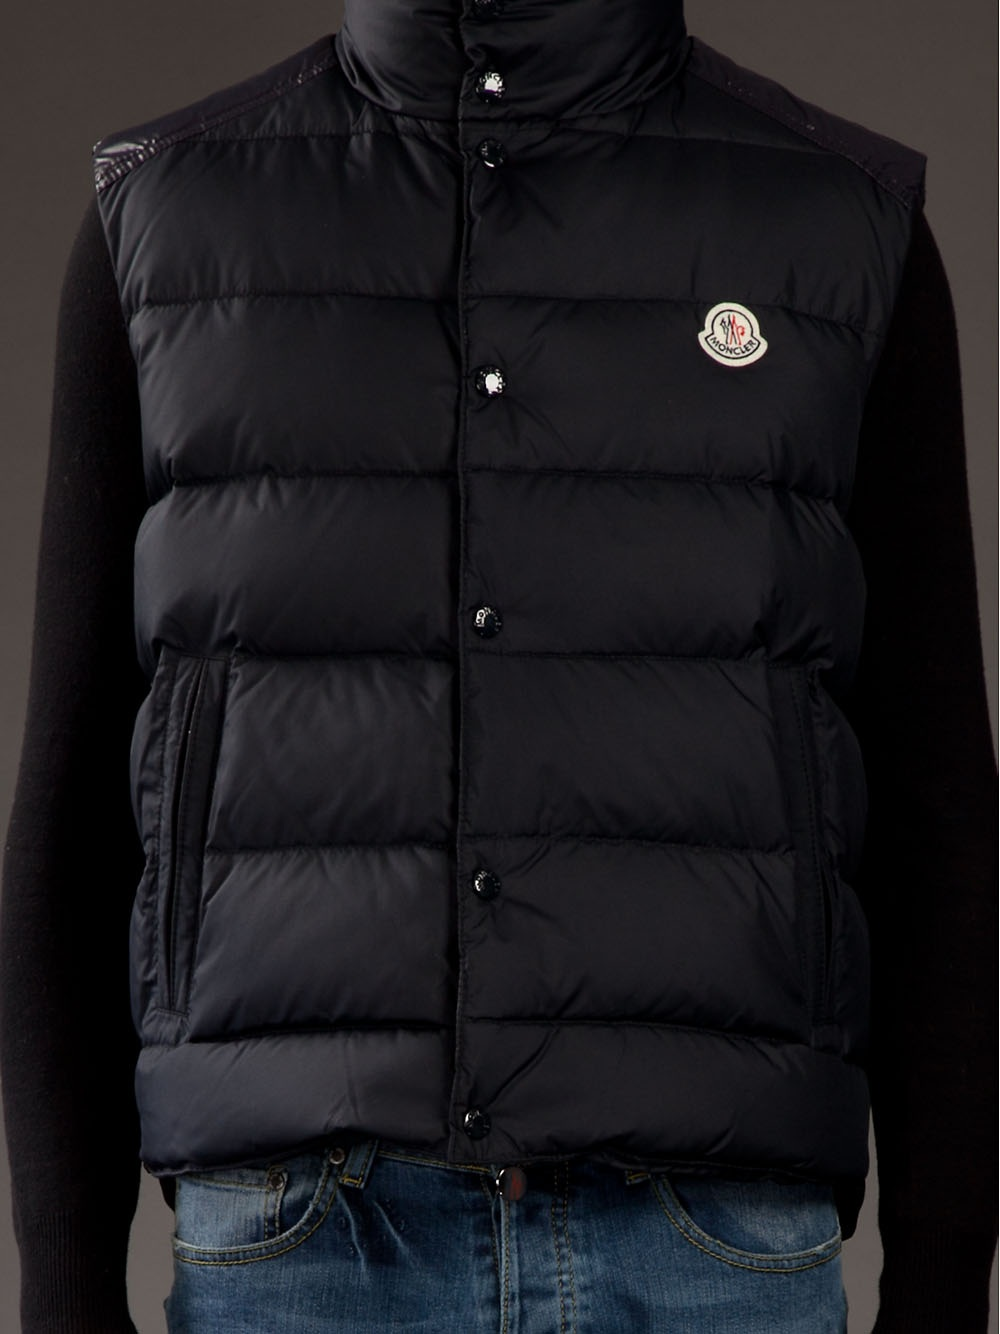 navy blue moncler body warmer